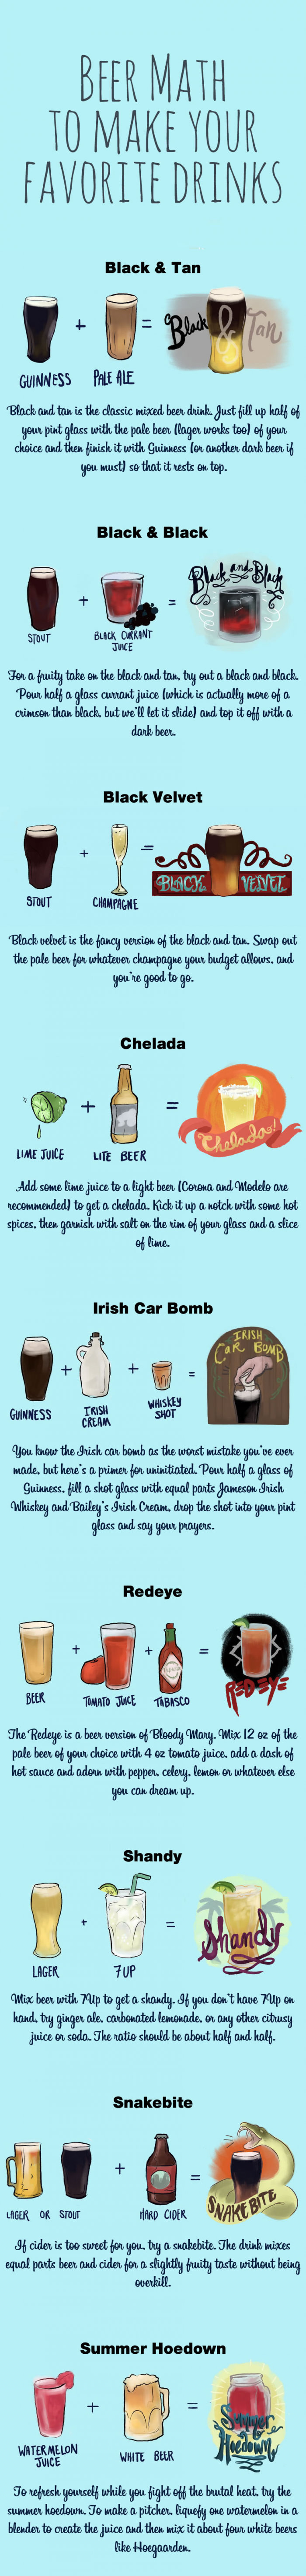 9 Beer Cocktails For Summer Party. . BEER Ira MAKE YOUR DRINKS Black & Tan GUINNESS PM mi swam you must! sump. Black & Black erifel? may Buck COMINT I, aiaiai%